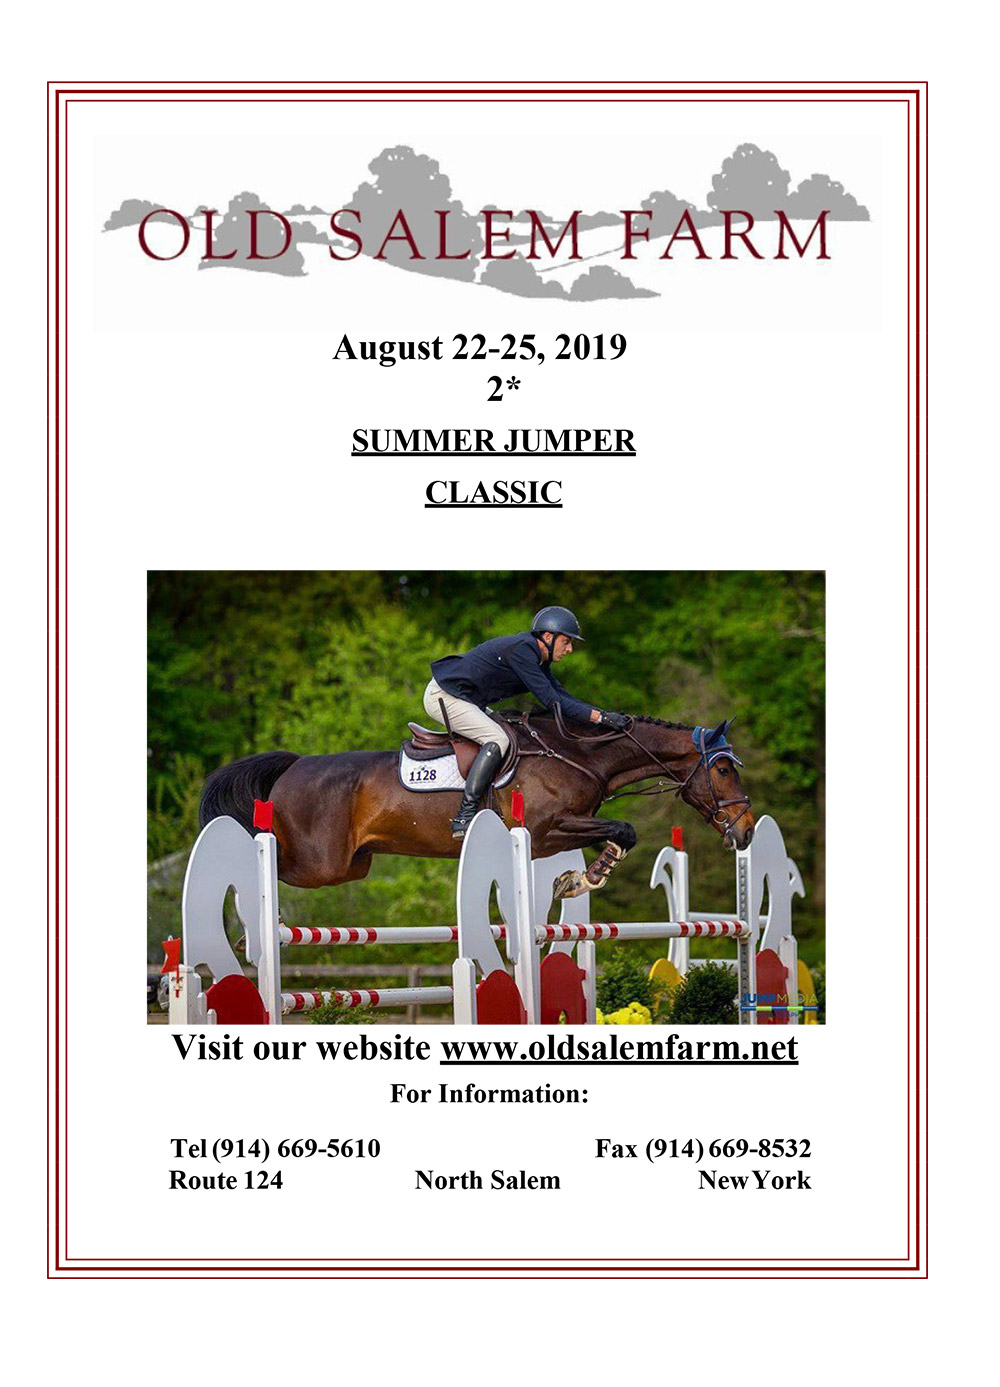 View the Summer Jumper Classic Prize List